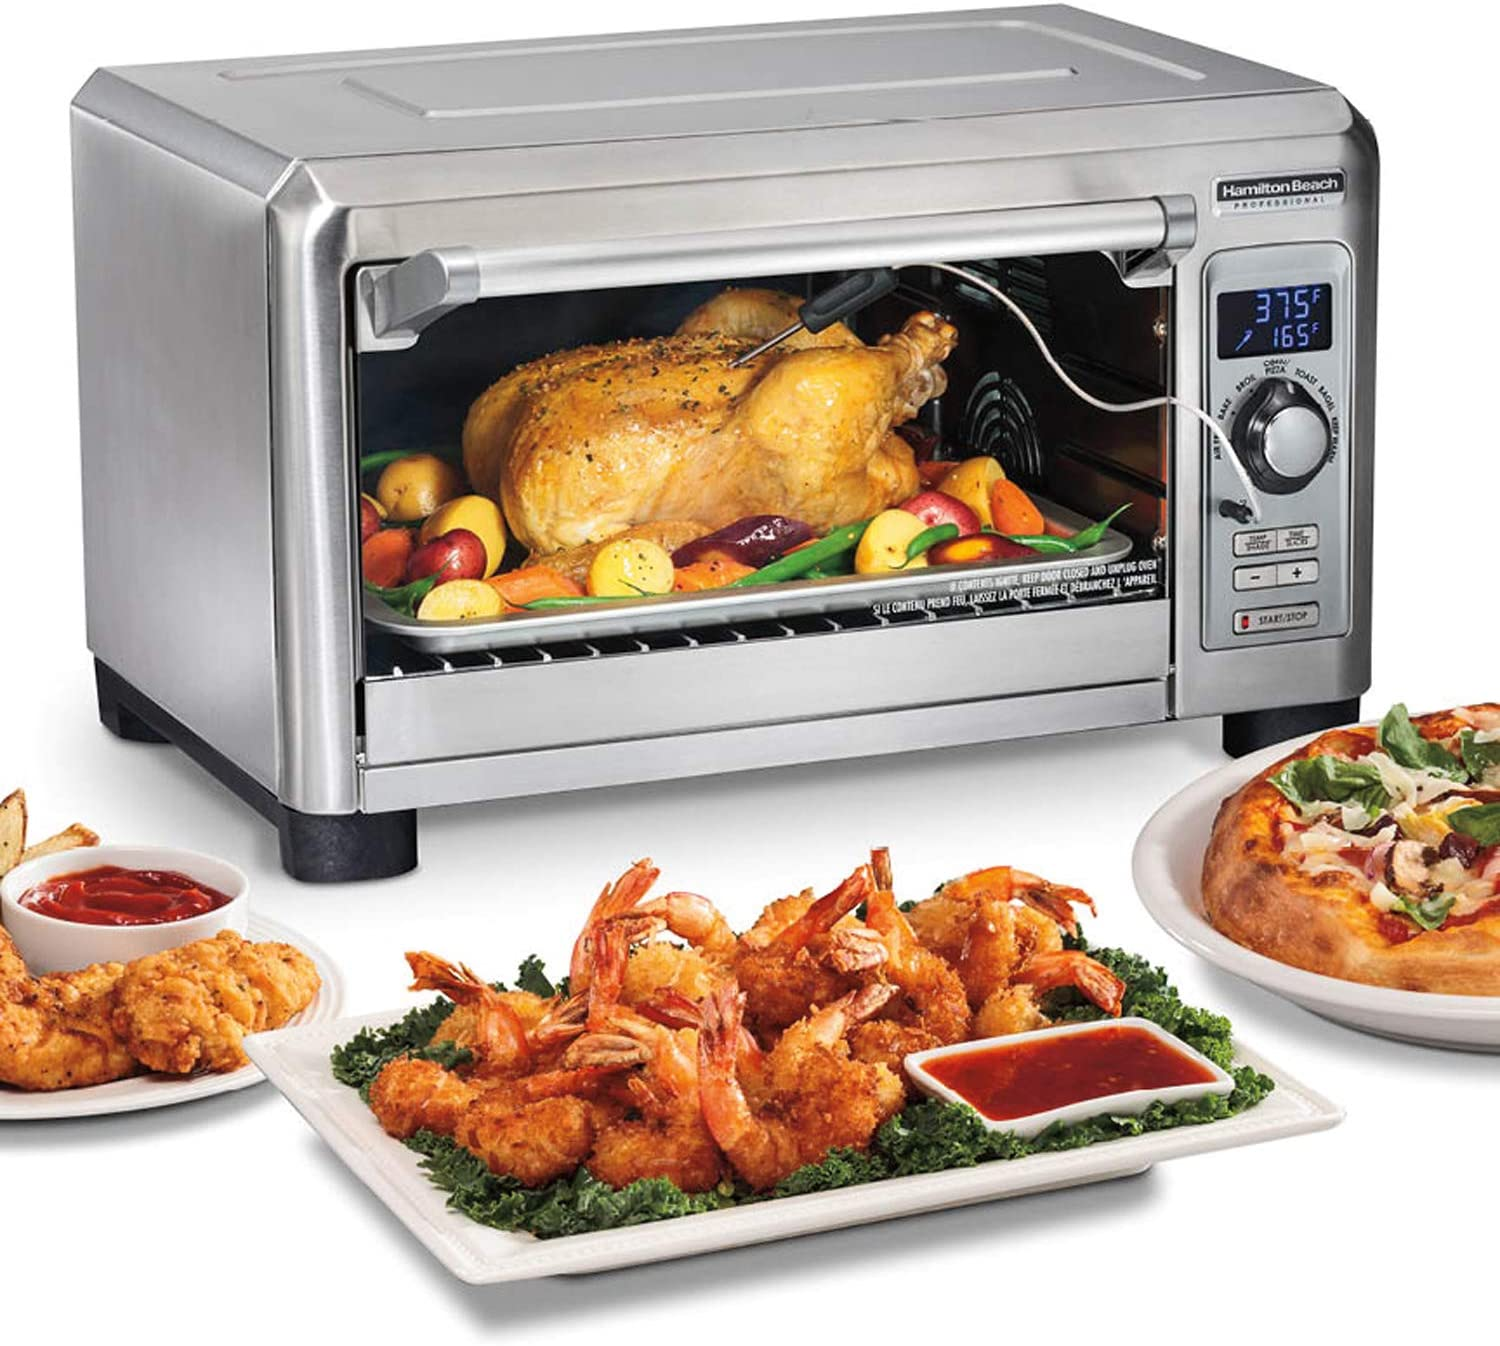 """Hamilton Beach Professional 31243 Sure-Crisp Digital Air Fryer Countertop Toaster Oven, 1500W, Fits 12"""" Pizza, 6 Slice Capacity, Temperature Probe, STAINLESS STEEL"""